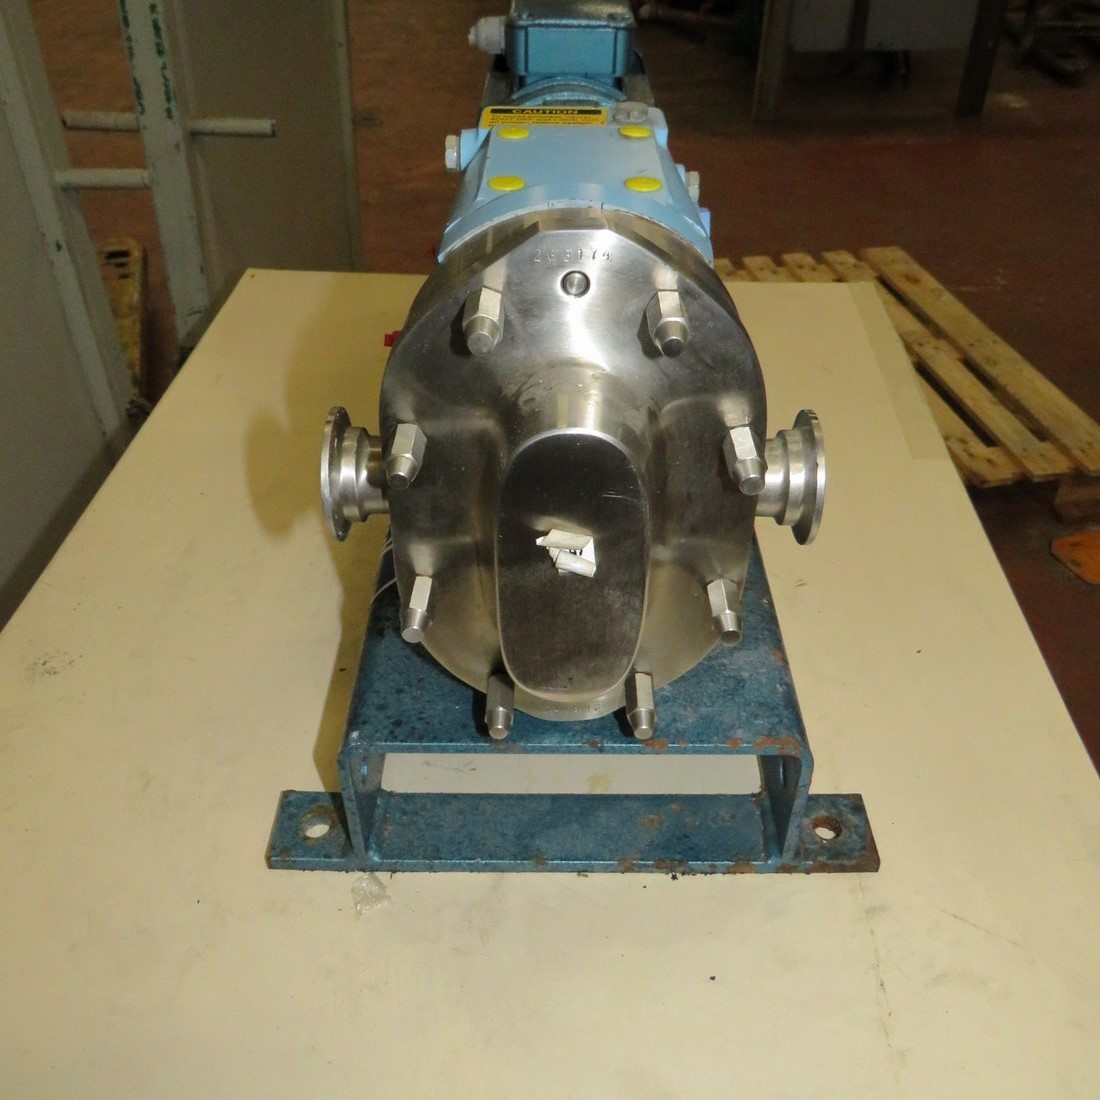 R10DE833 Stainless steel WAUKESHA roots rotary pump 006 type 0.37 kw - hp 0.5